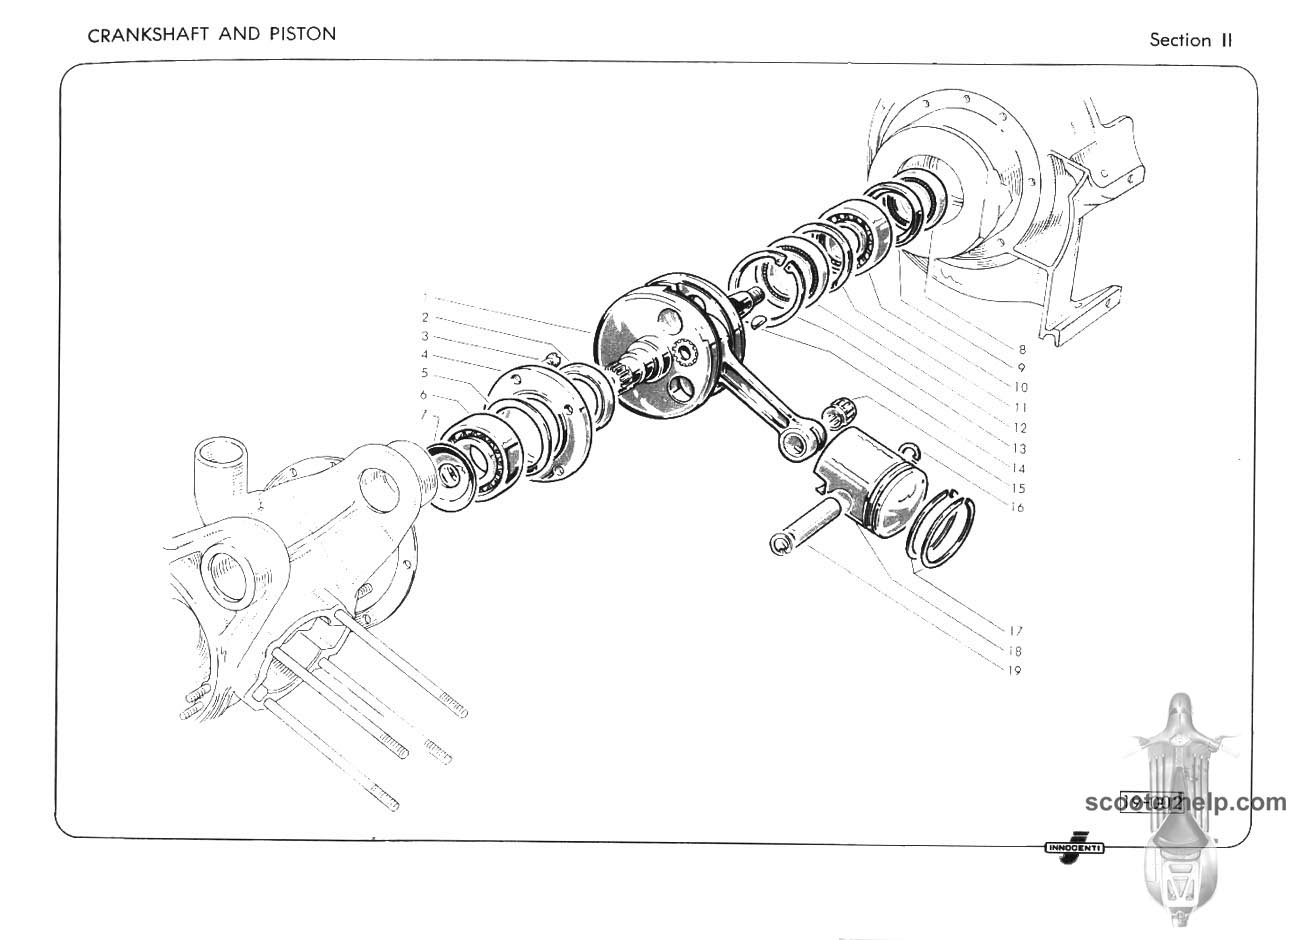 Lambretta Li125 Li150 Tv175 Series Ii Parts Book Scooter Wiring Diagram 100 If You Prefer A Slightly Lower Resolution Dpipdf File Of All The Pages Click Here For Single 74mb Download Entire